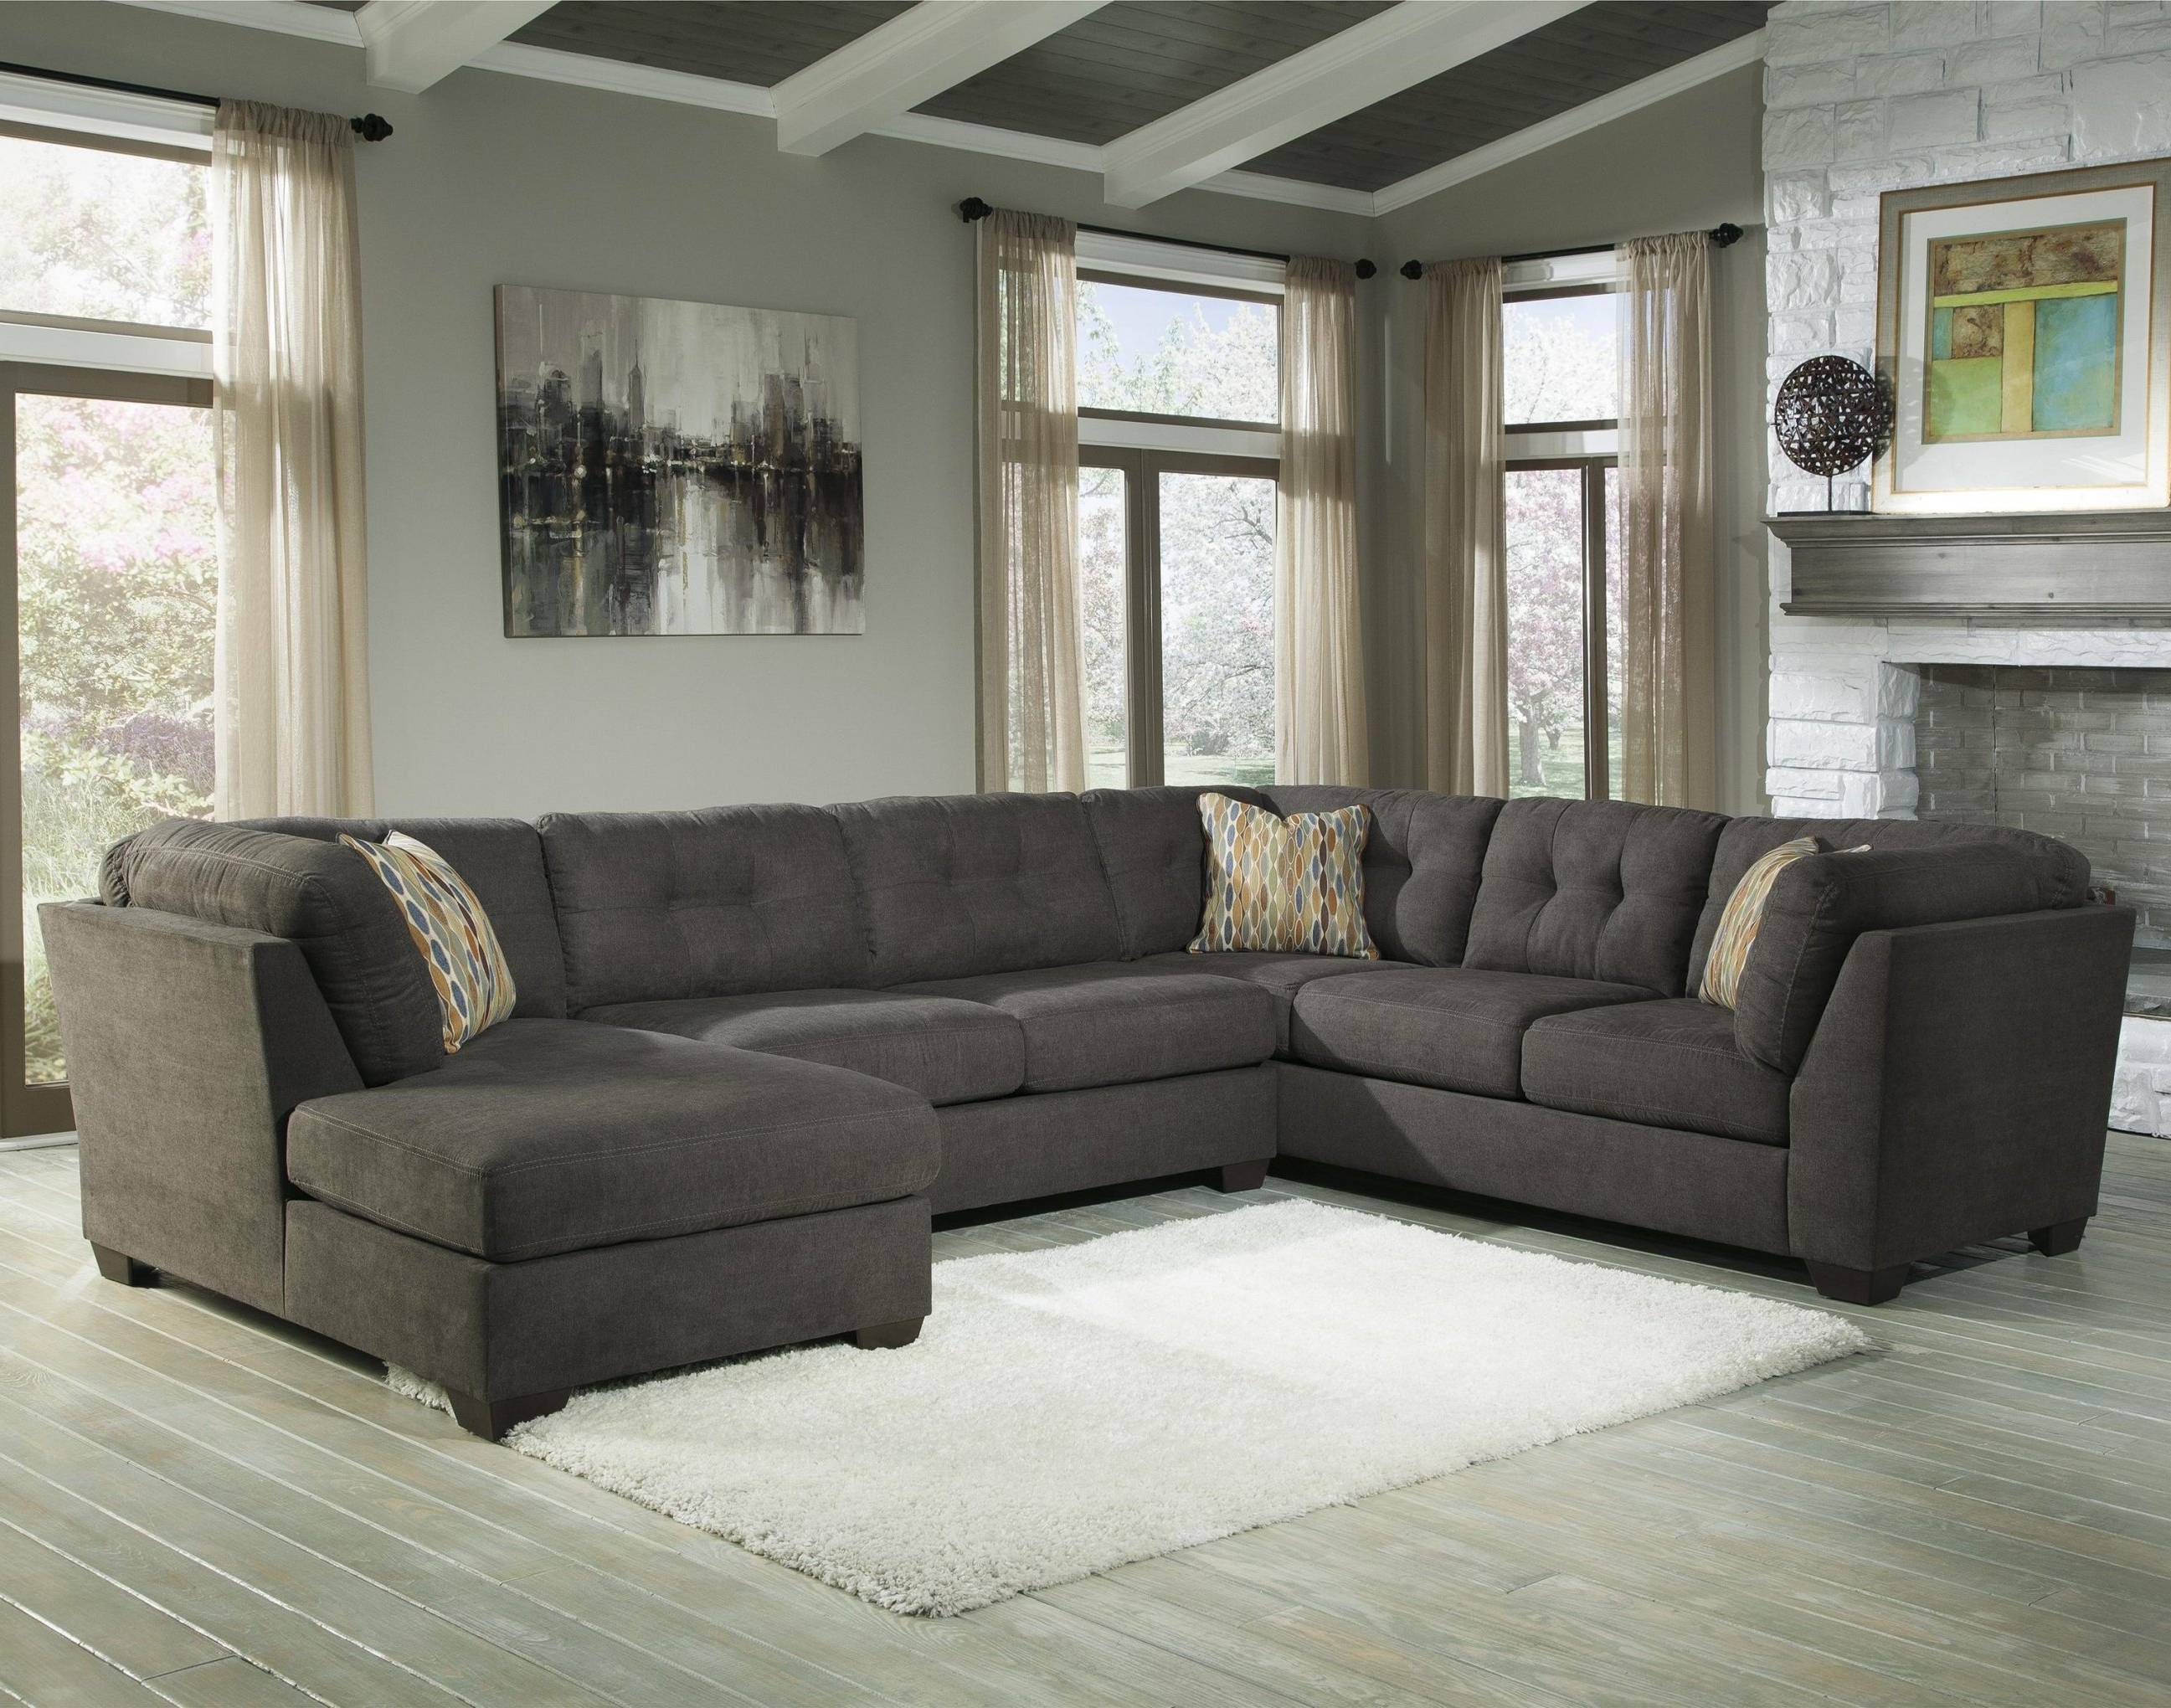 Piece Modular Sectional W/ Armless Sleeper & Right Chaise In 3 Pertaining To Well Liked 3 Piece Sectional Sleeper Sofas (View 5 of 20)